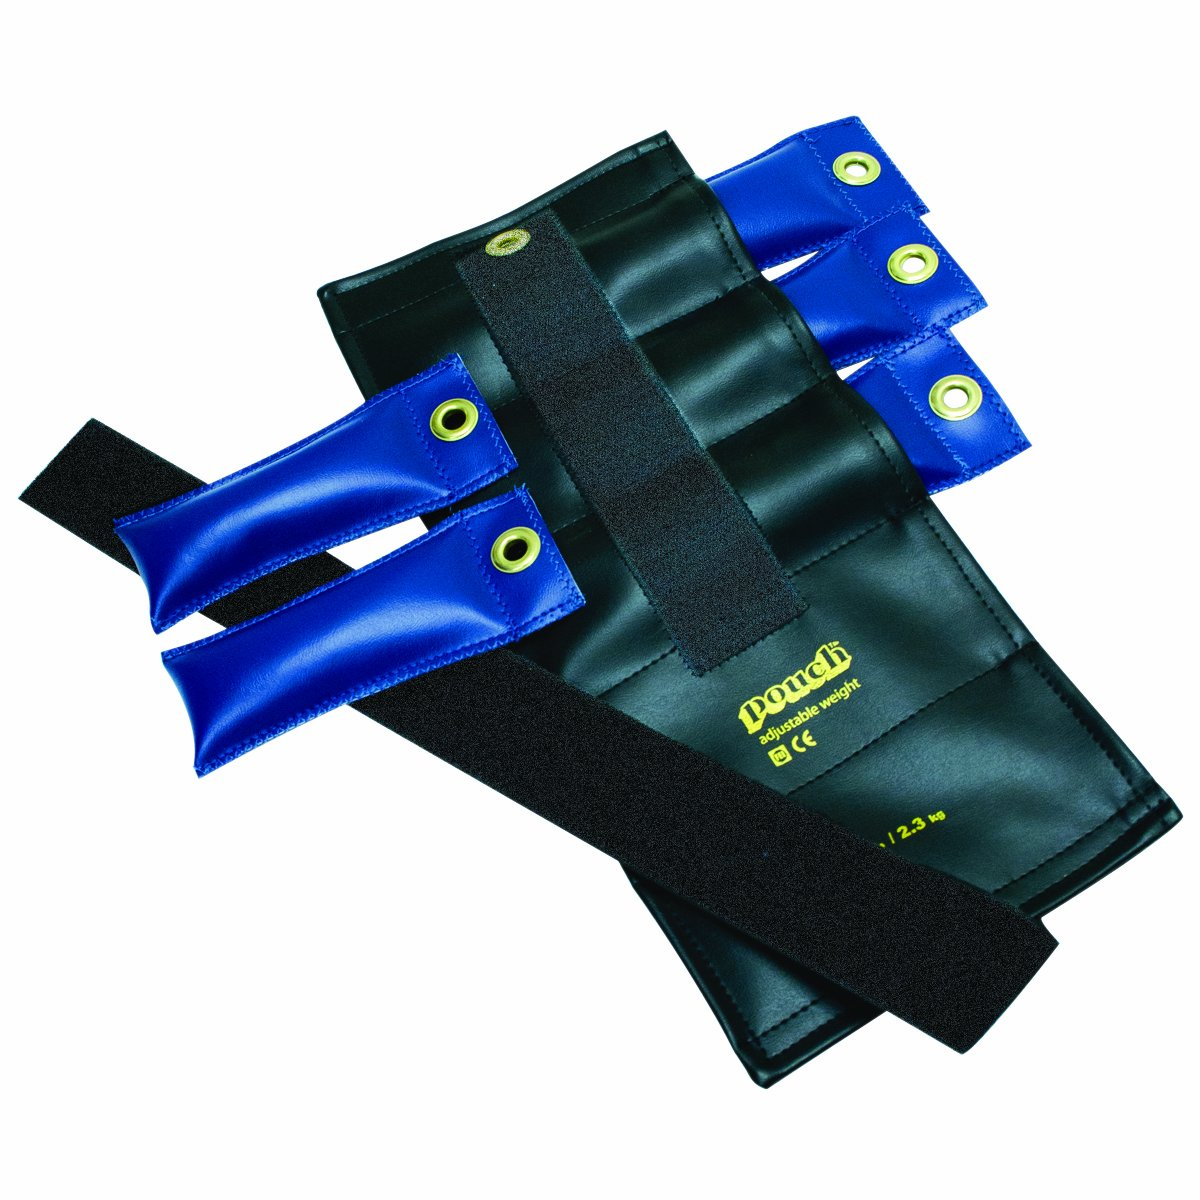 the Cuff 10-0301 Pouch Variable Wrist and Ankle Weight, 5 lb, 5 x 1 lb Inserts, Black